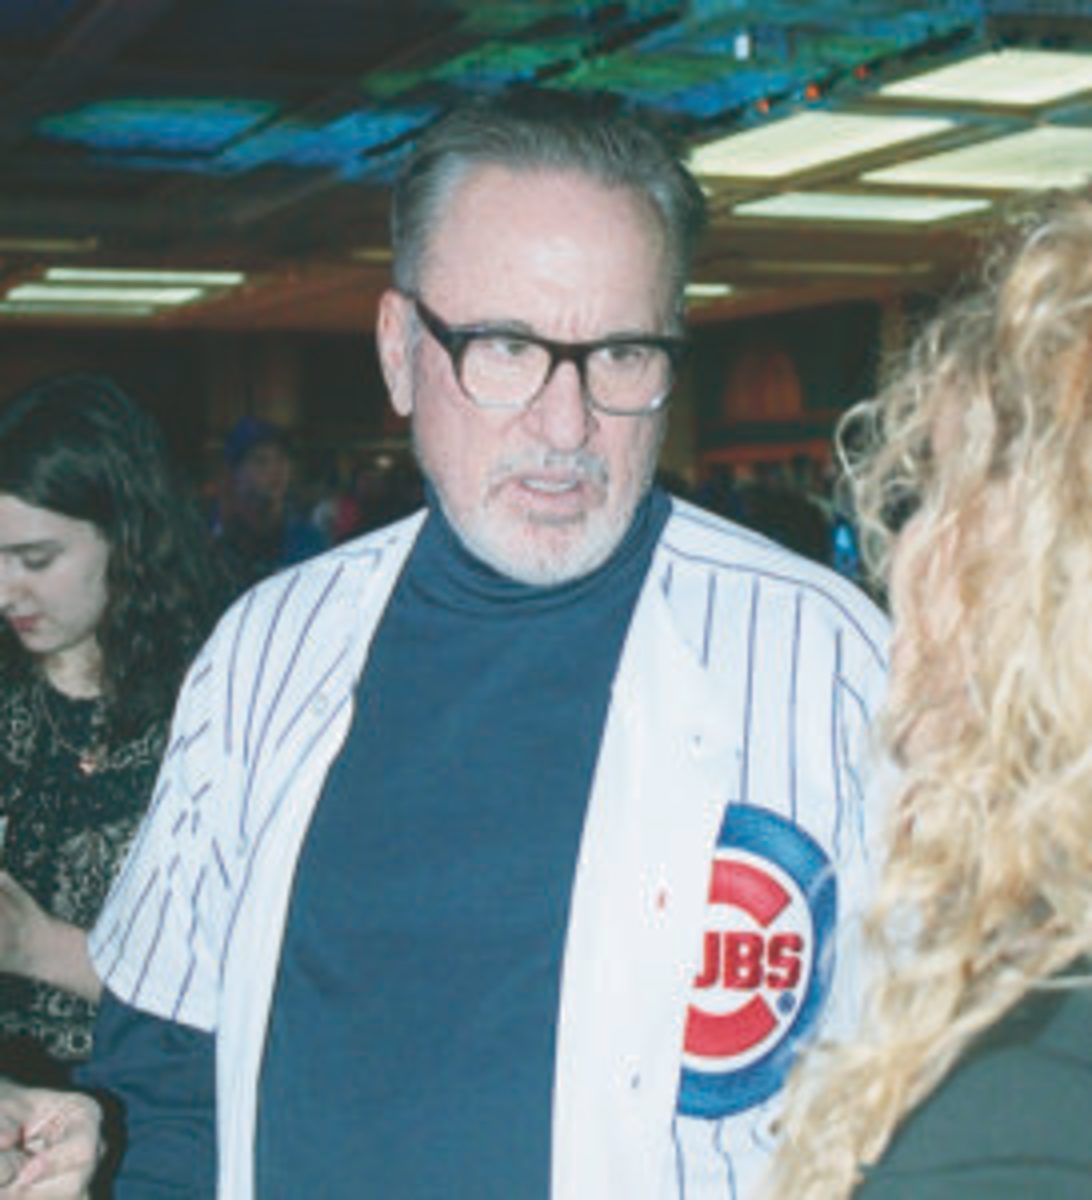 Chicago Cubs manager Joe Maddon at the 2018 Cubs Convention. (Rick Firfer photos)